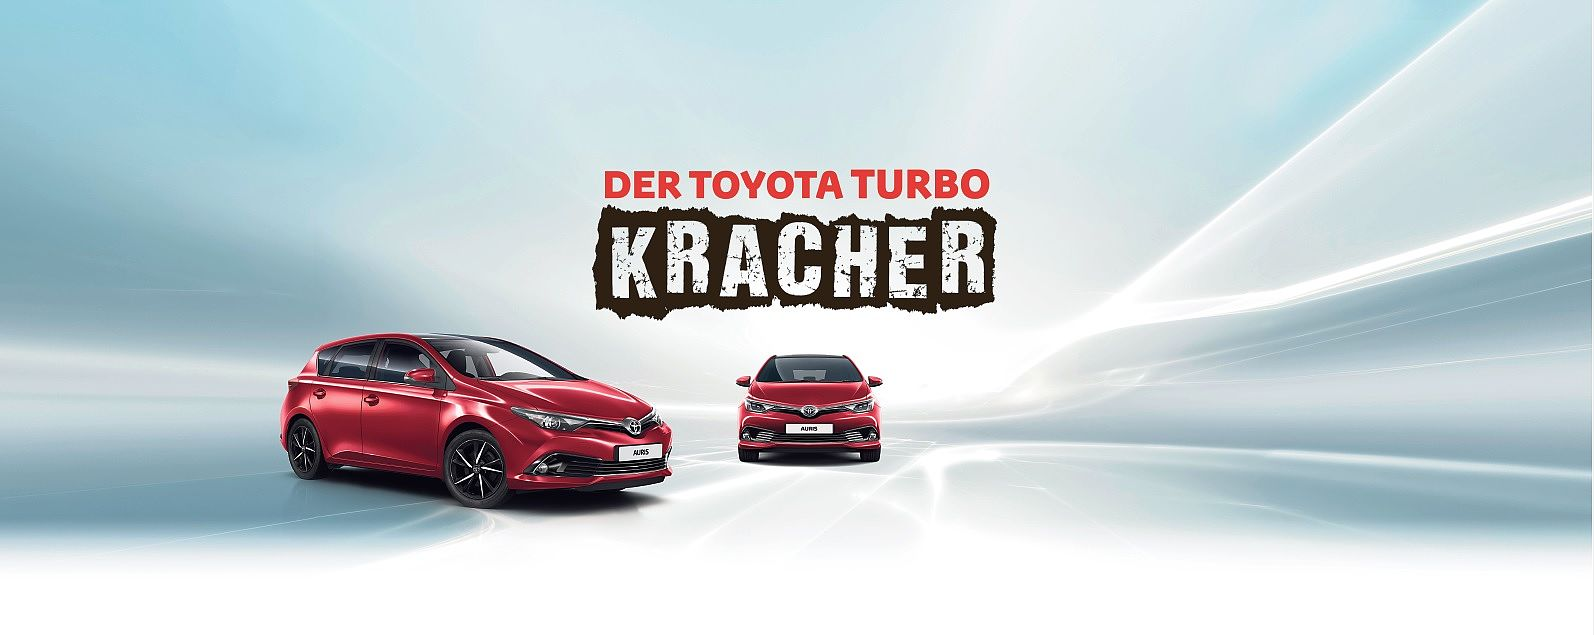 Der Auris Turbo Kracher Team D